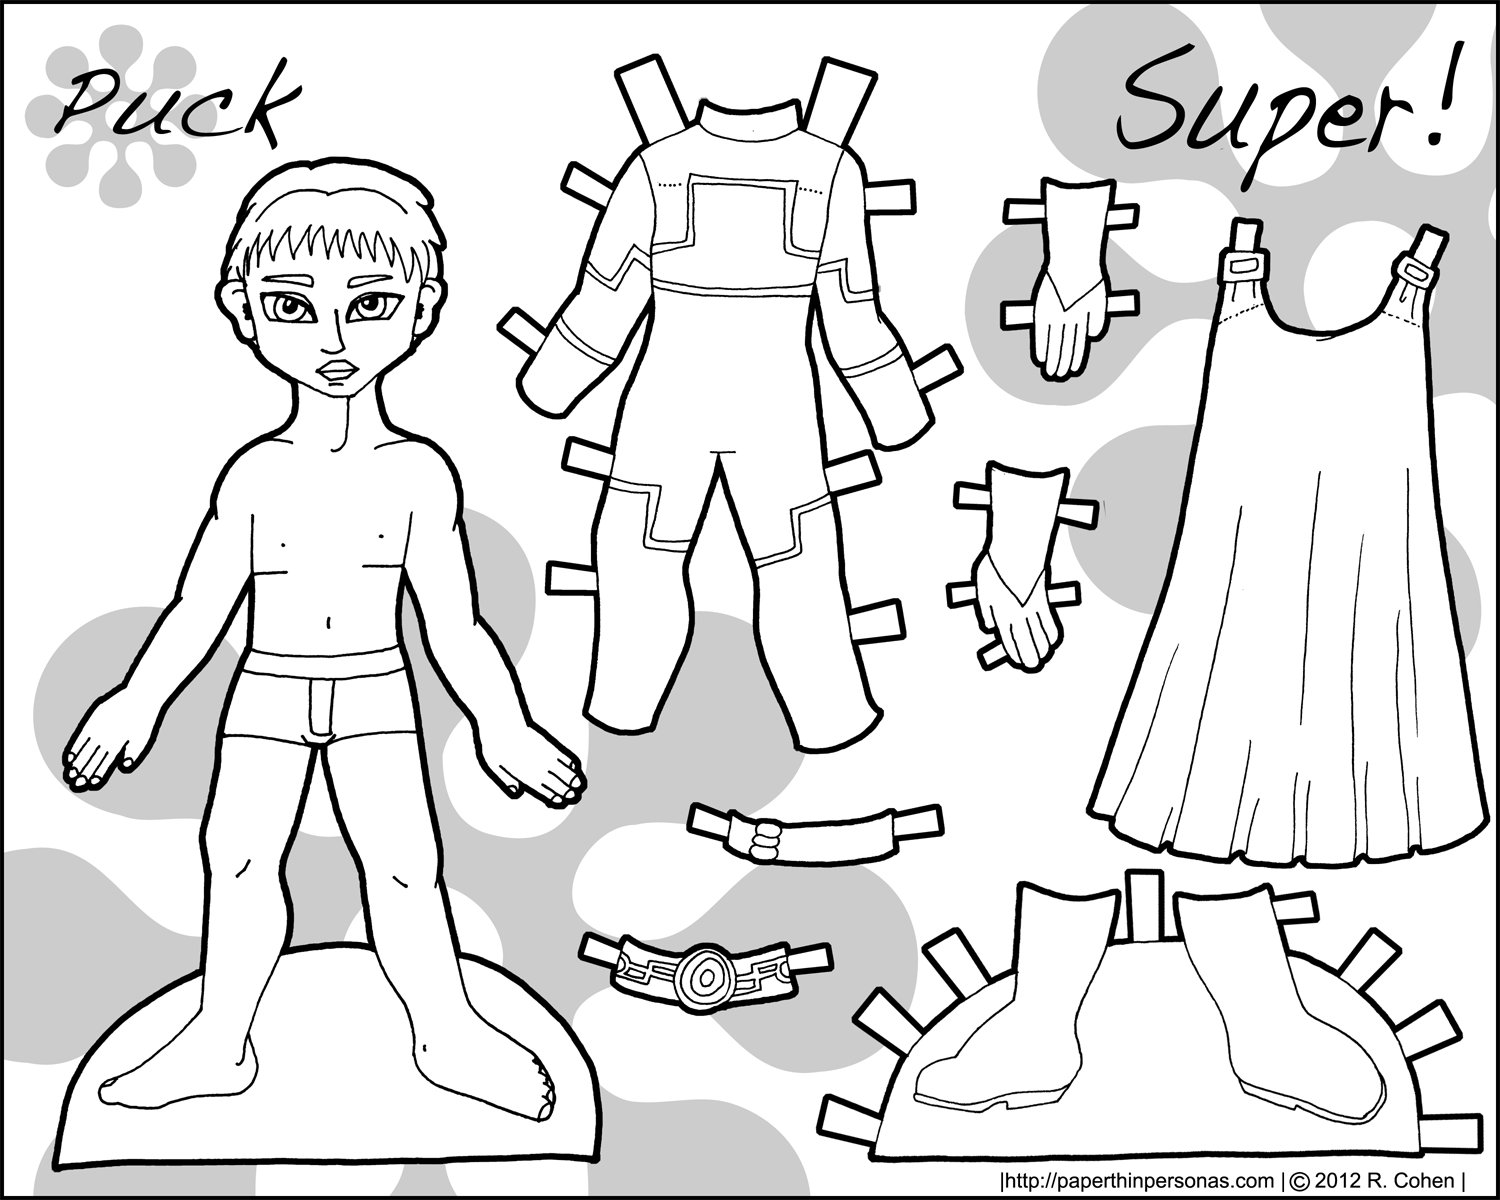 Puck Paper Dolls For Boys Paper Thin Personas